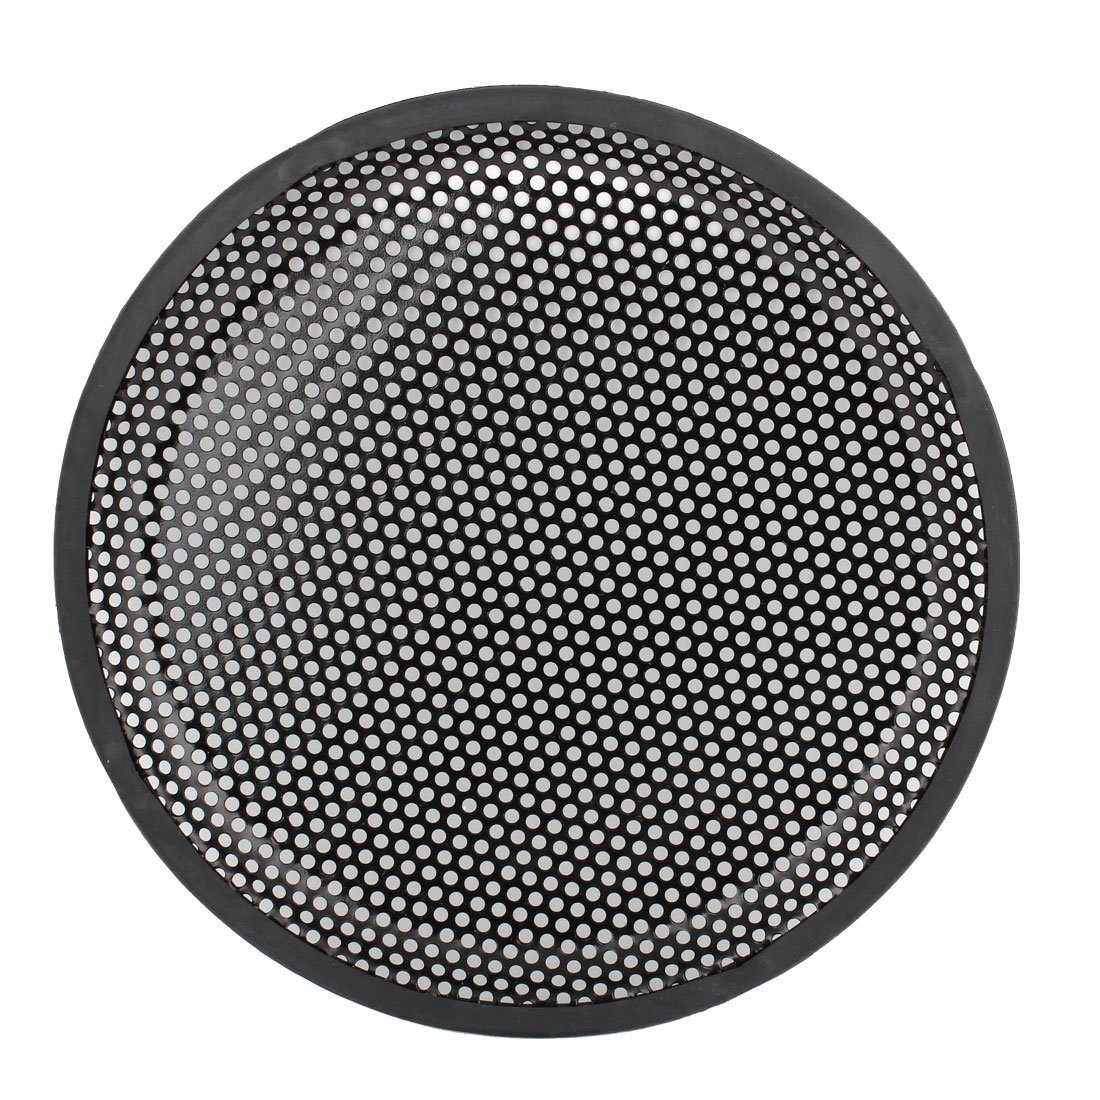 Uxcell a14060900ux0042 10 Dia Metal Mesh Car Woofer Protective Cover Speaker Grill Black